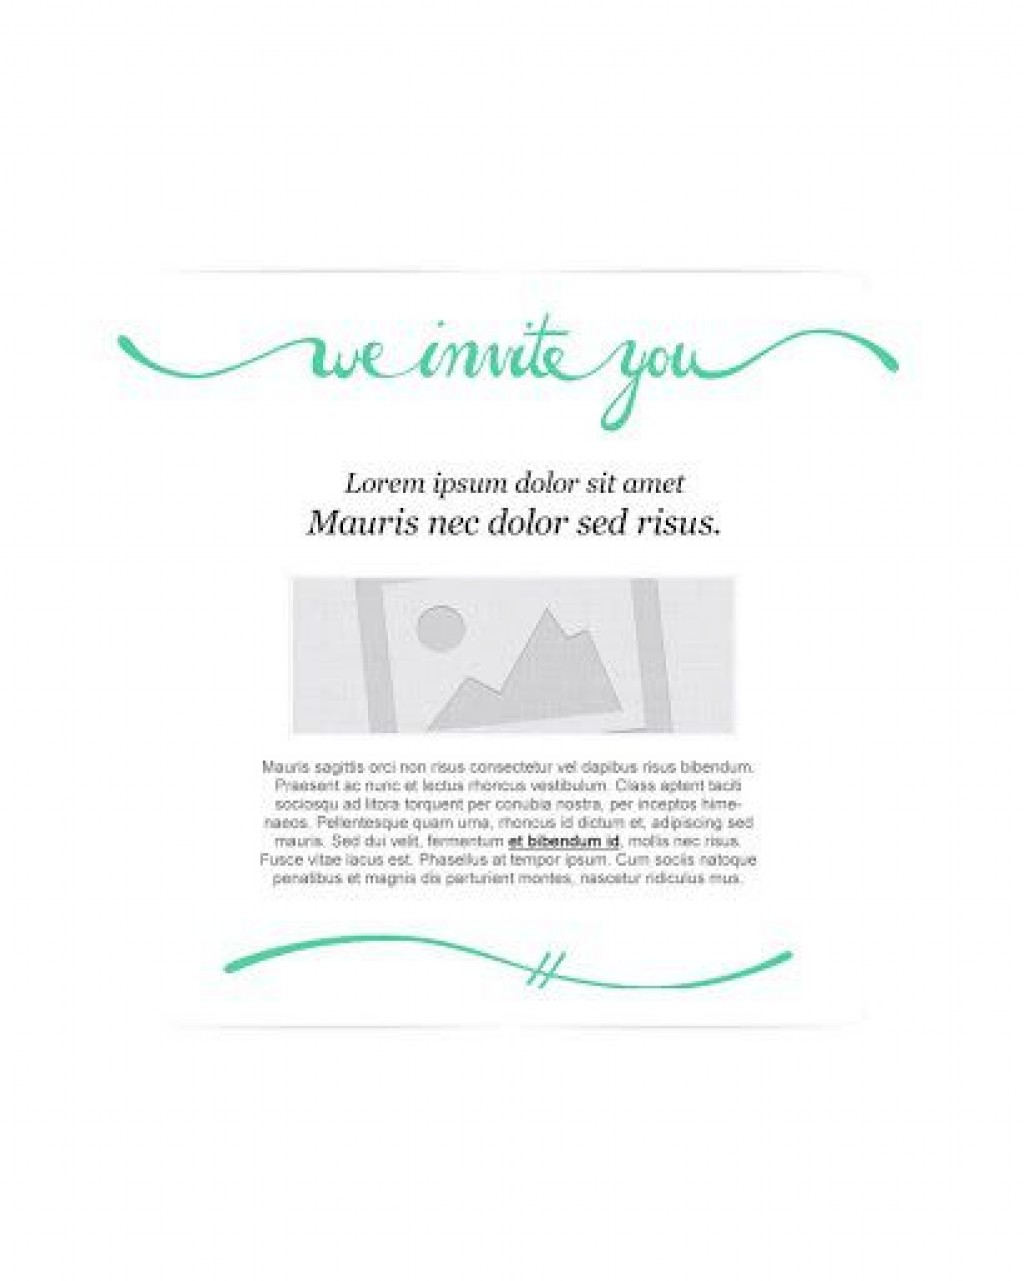 009 Imposing Free Email Invitation Template Design  Ecard Wedding Party Invite For OutlookLarge